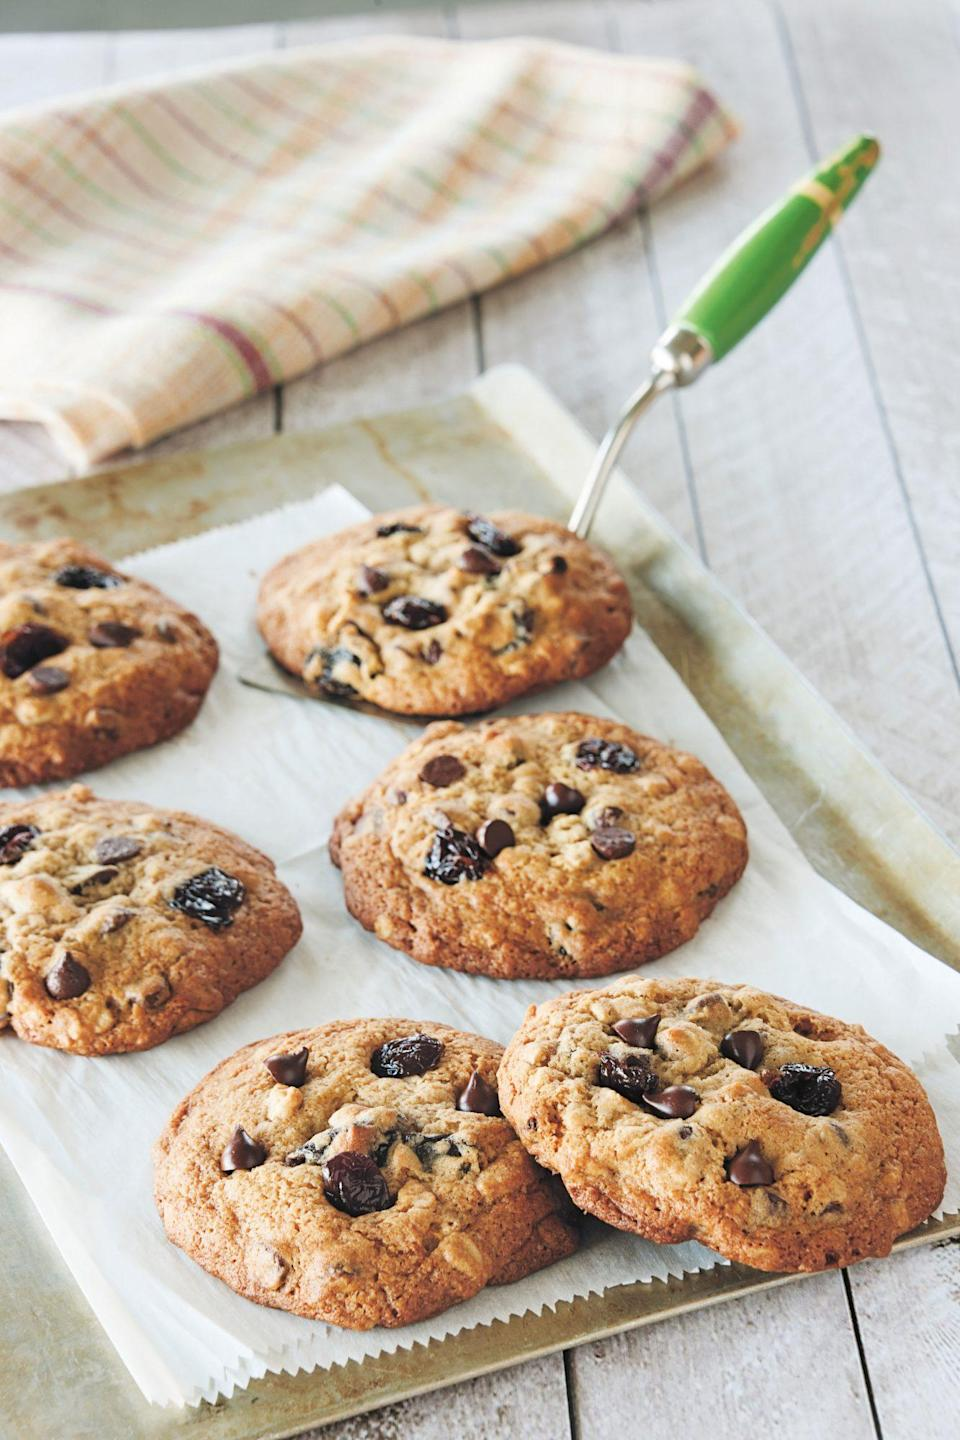 "<p><strong>Recipe: </strong><a href=""http://www.southernliving.com/recipes/chocolate-chip-cherry-cookies-recipe"" rel=""nofollow noopener"" target=""_blank"" data-ylk=""slk:Damaris Phillips' Chocolate Chip Cherry Cookies"" class=""link rapid-noclick-resp""><strong>Damaris Phillips' Chocolate Chip Cherry Cookies</strong></a></p> <p>This is the first recipe that chef and cookbook author Damaris Phillips ever wrote, so you know it's a special one.</p>"